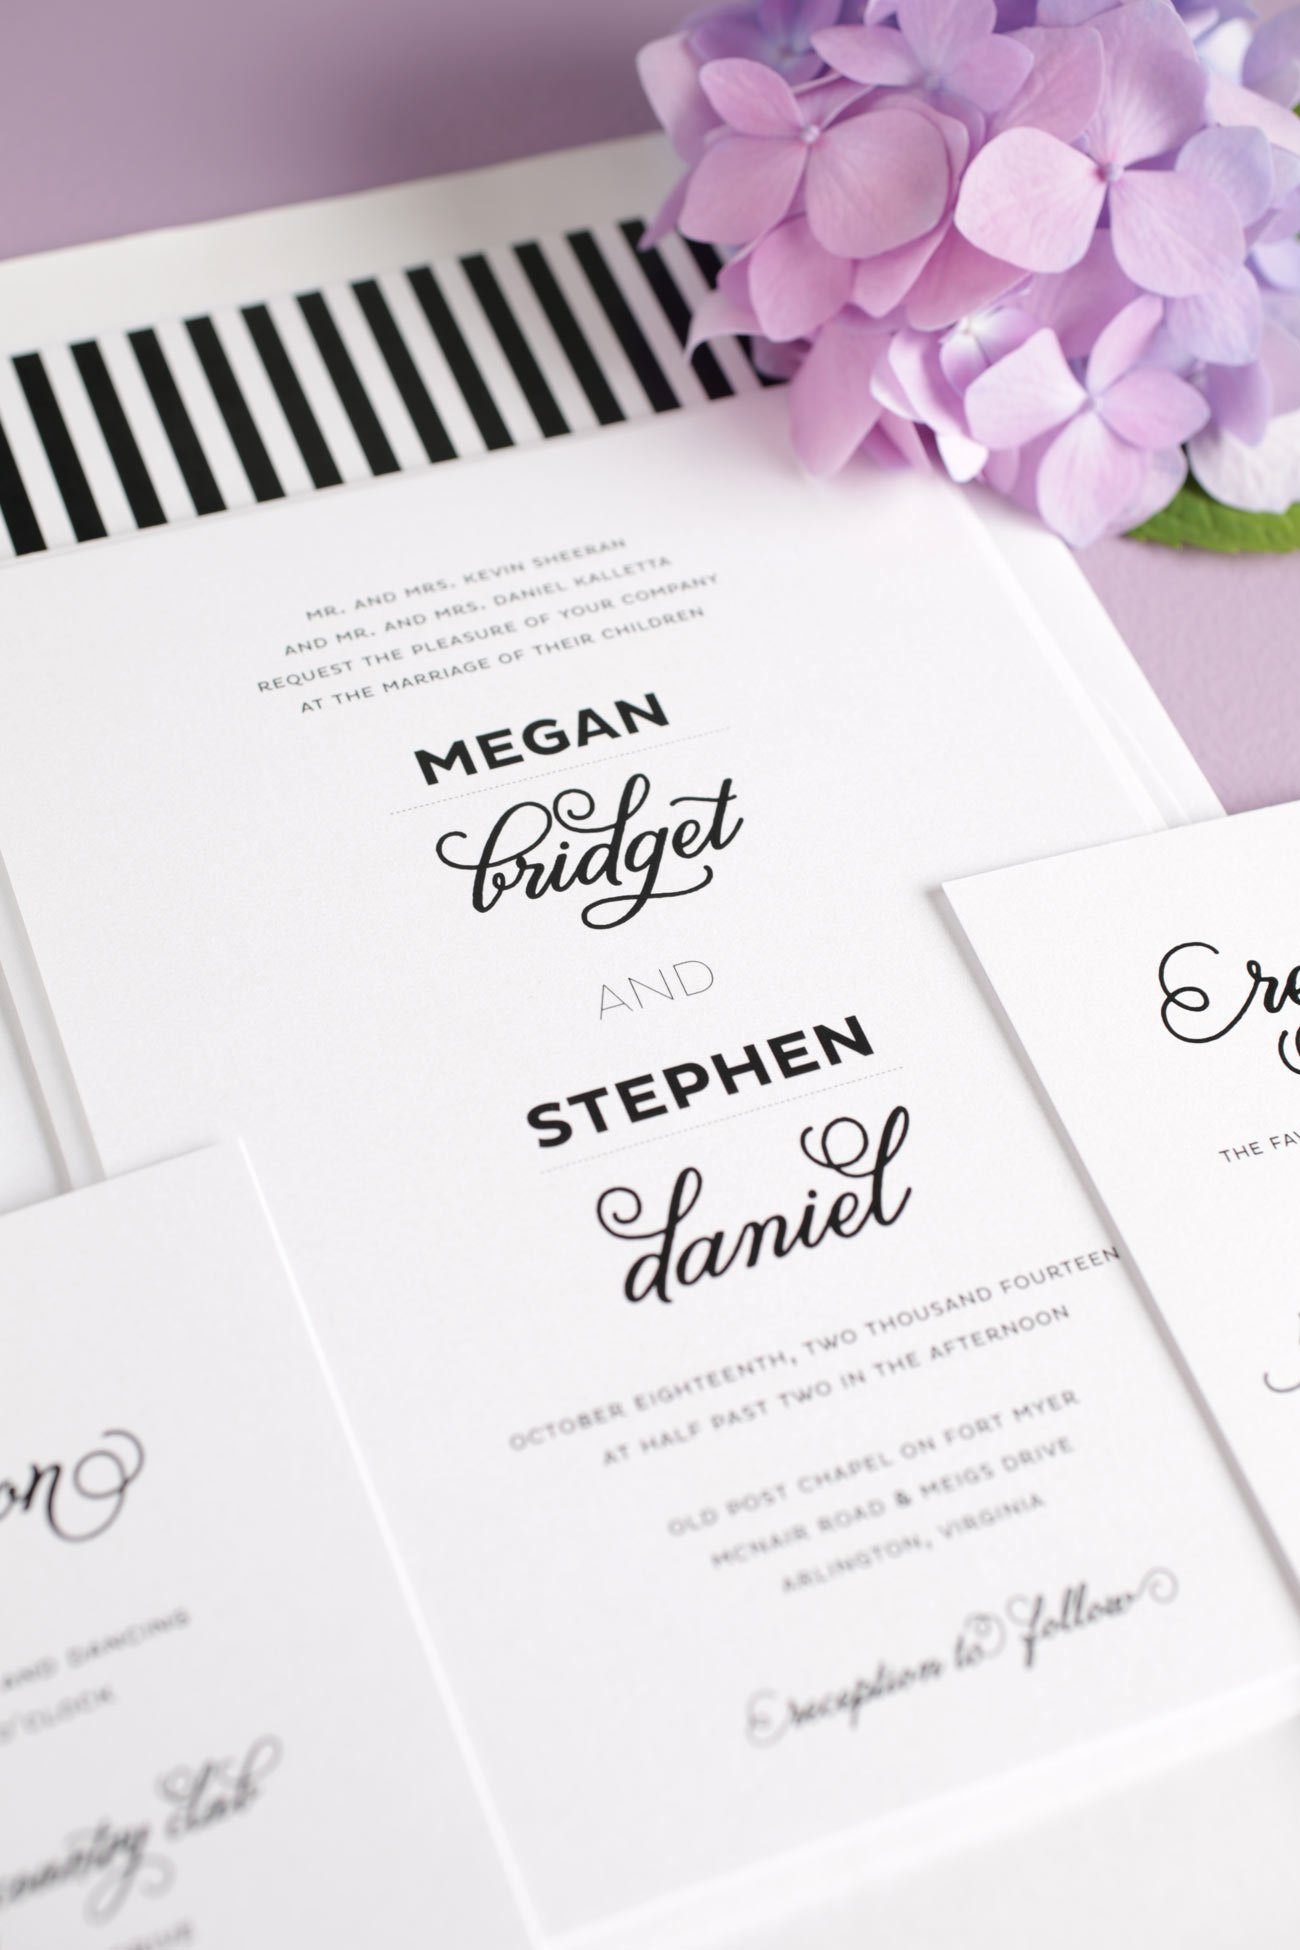 Modern black and white wedding invitations with a striped envelope liner